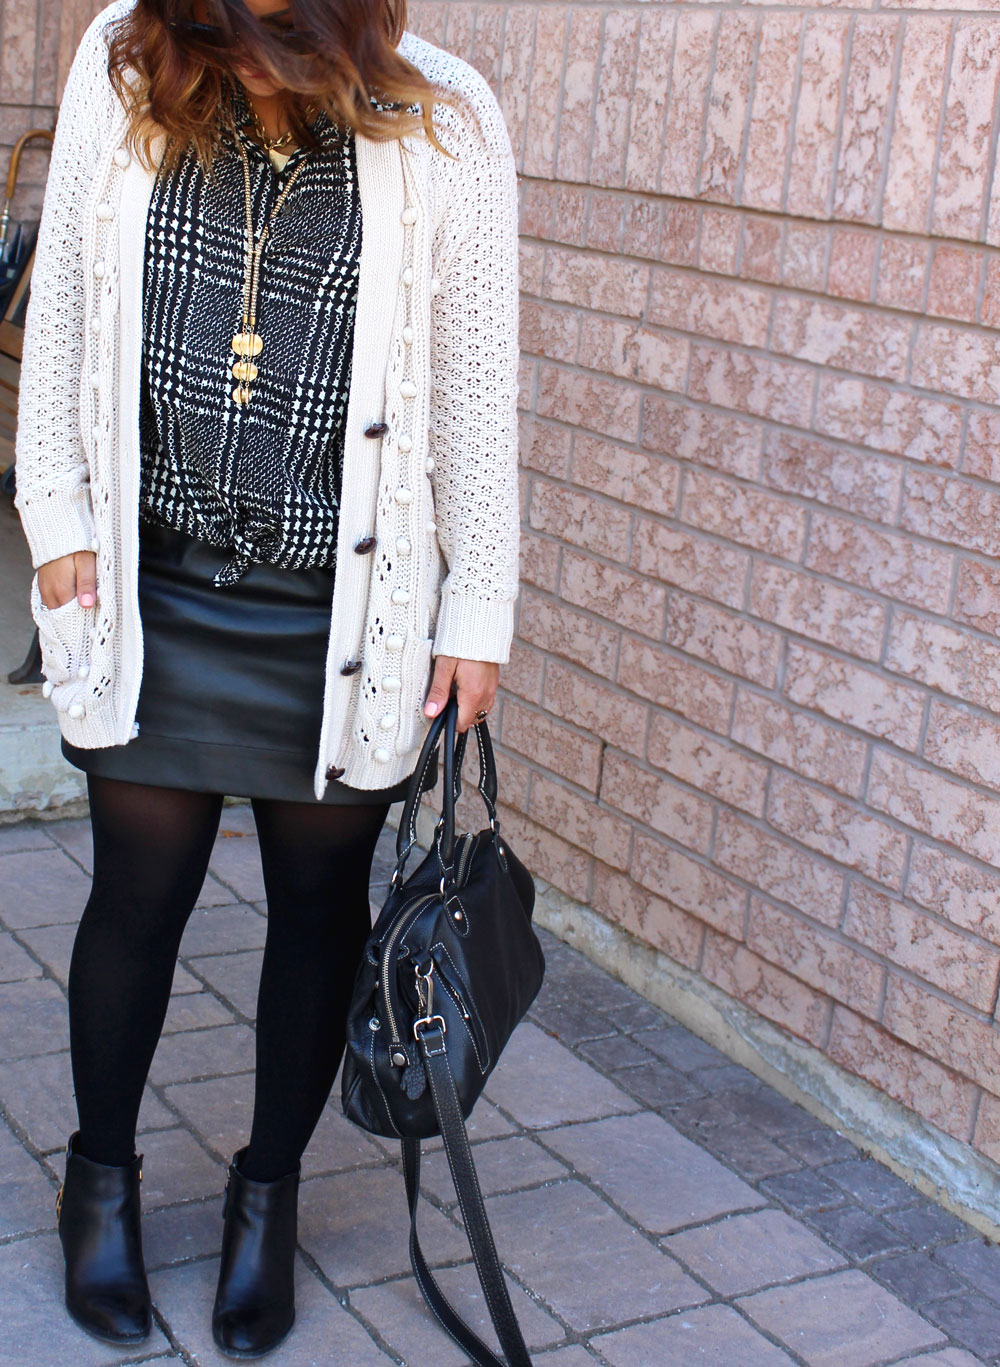 One outfit from day to night - Faux leather skirt and an oversized cardigan